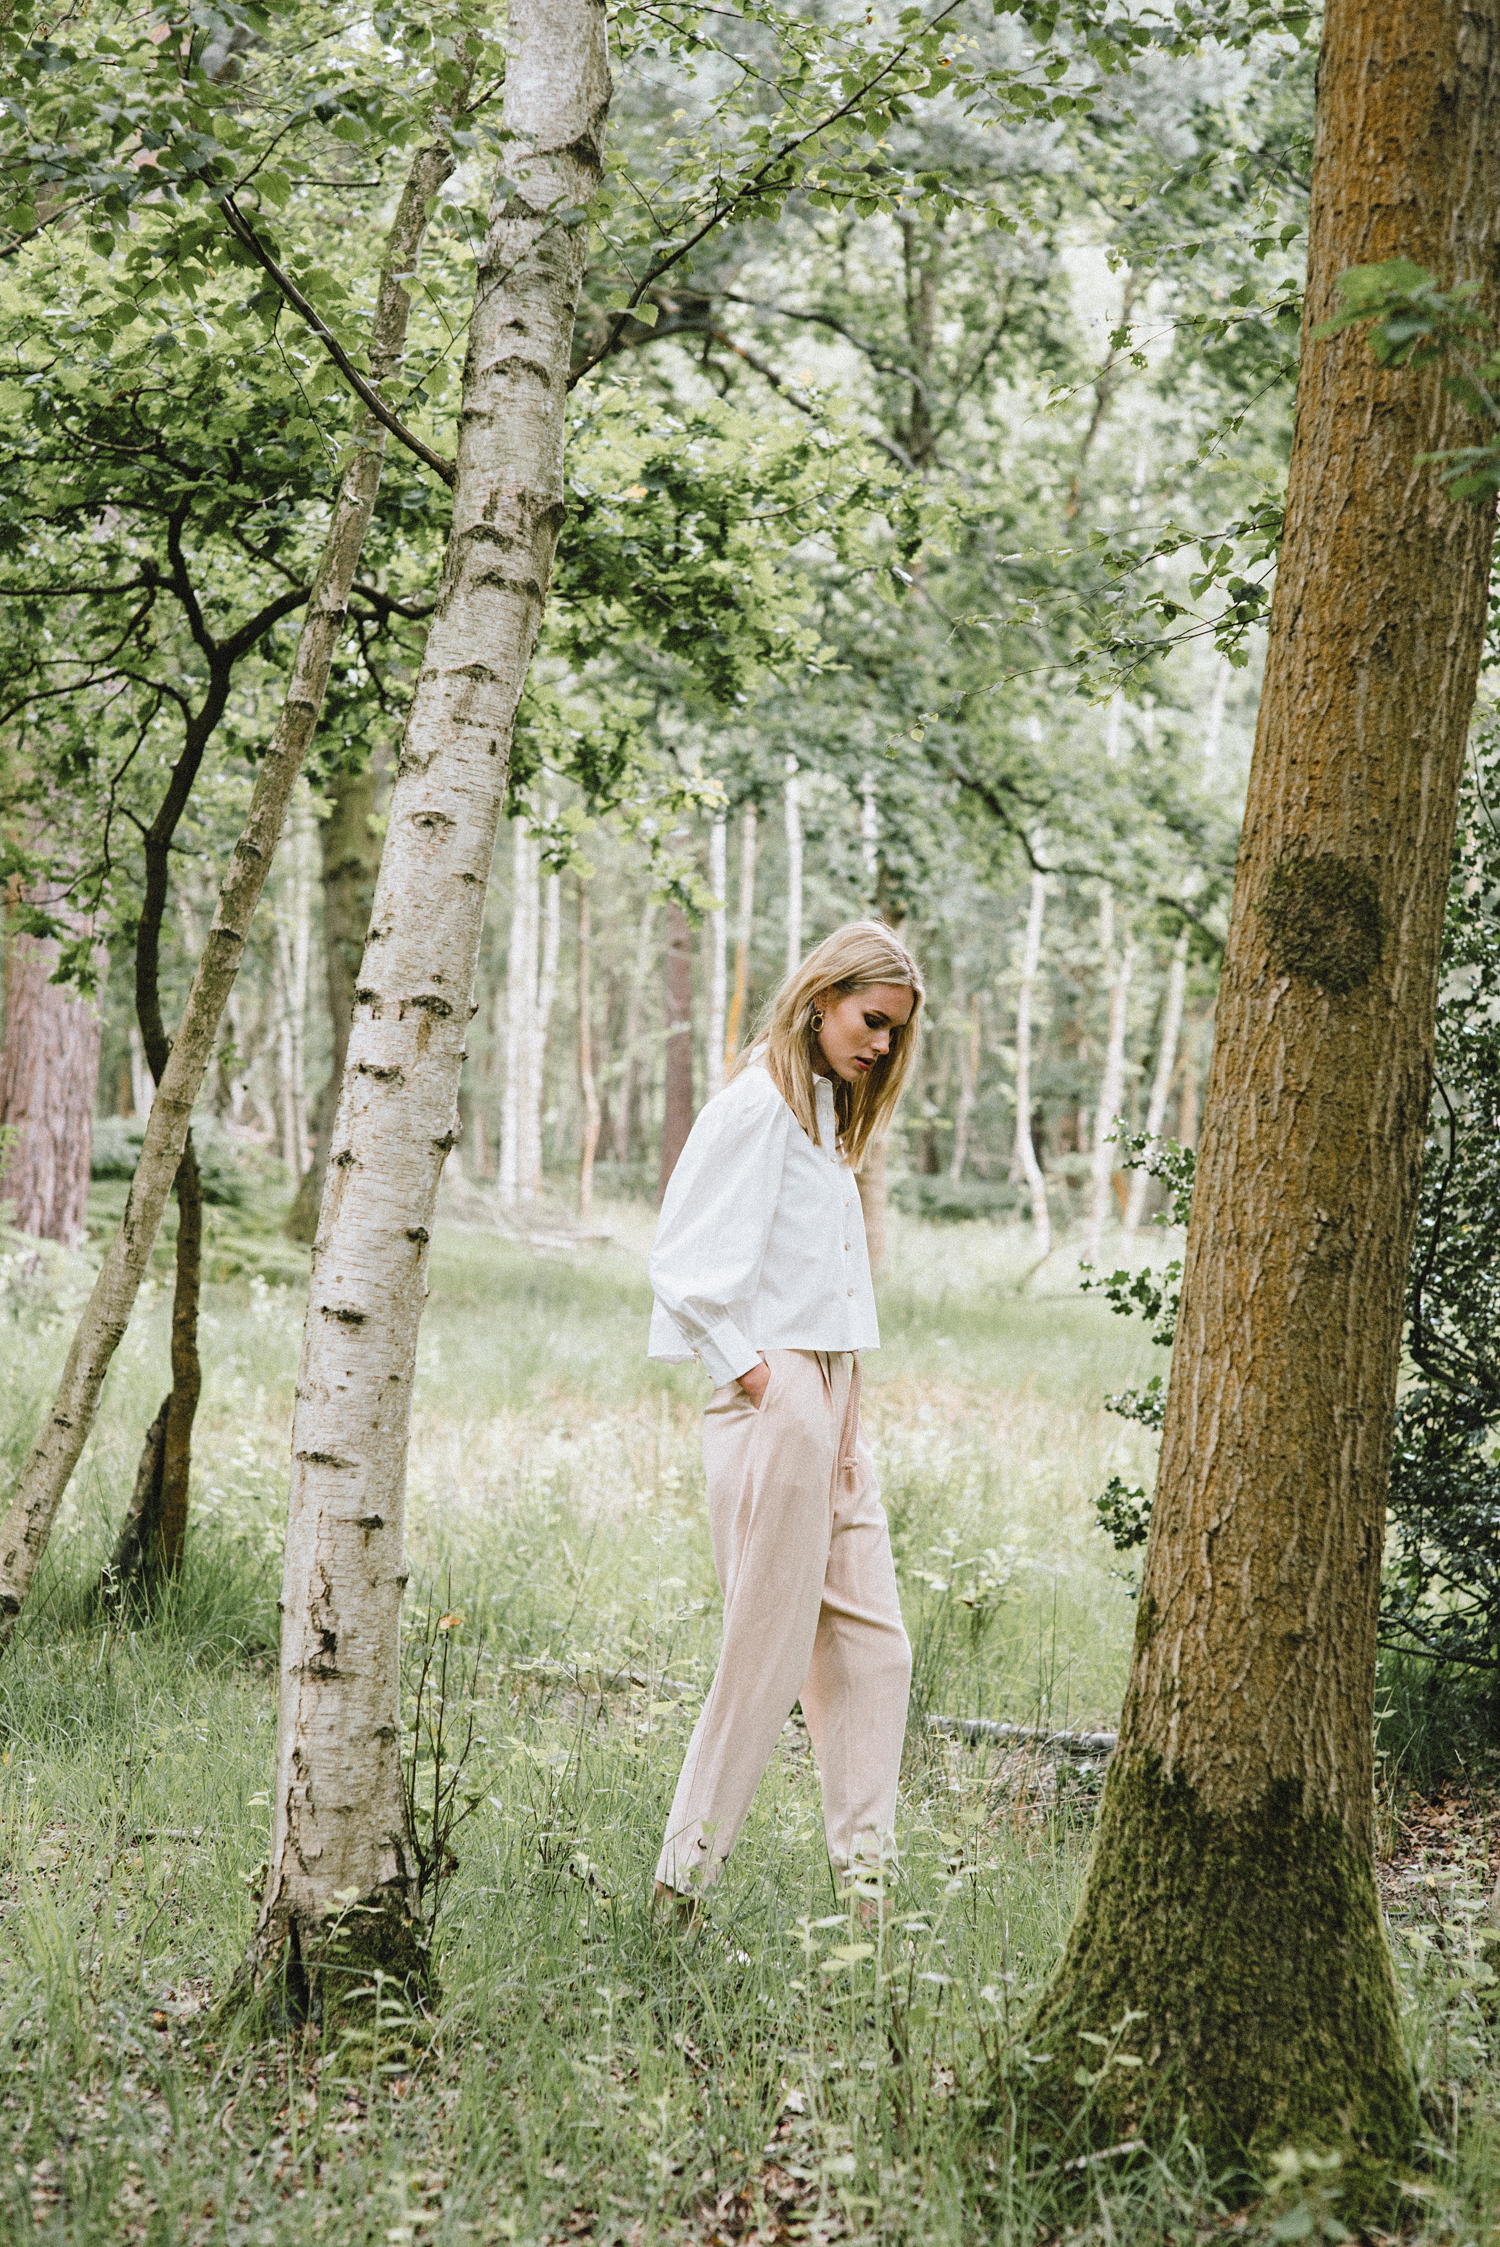 Blouse Sister Jane, Trousers ASOS, Shoes ASOS